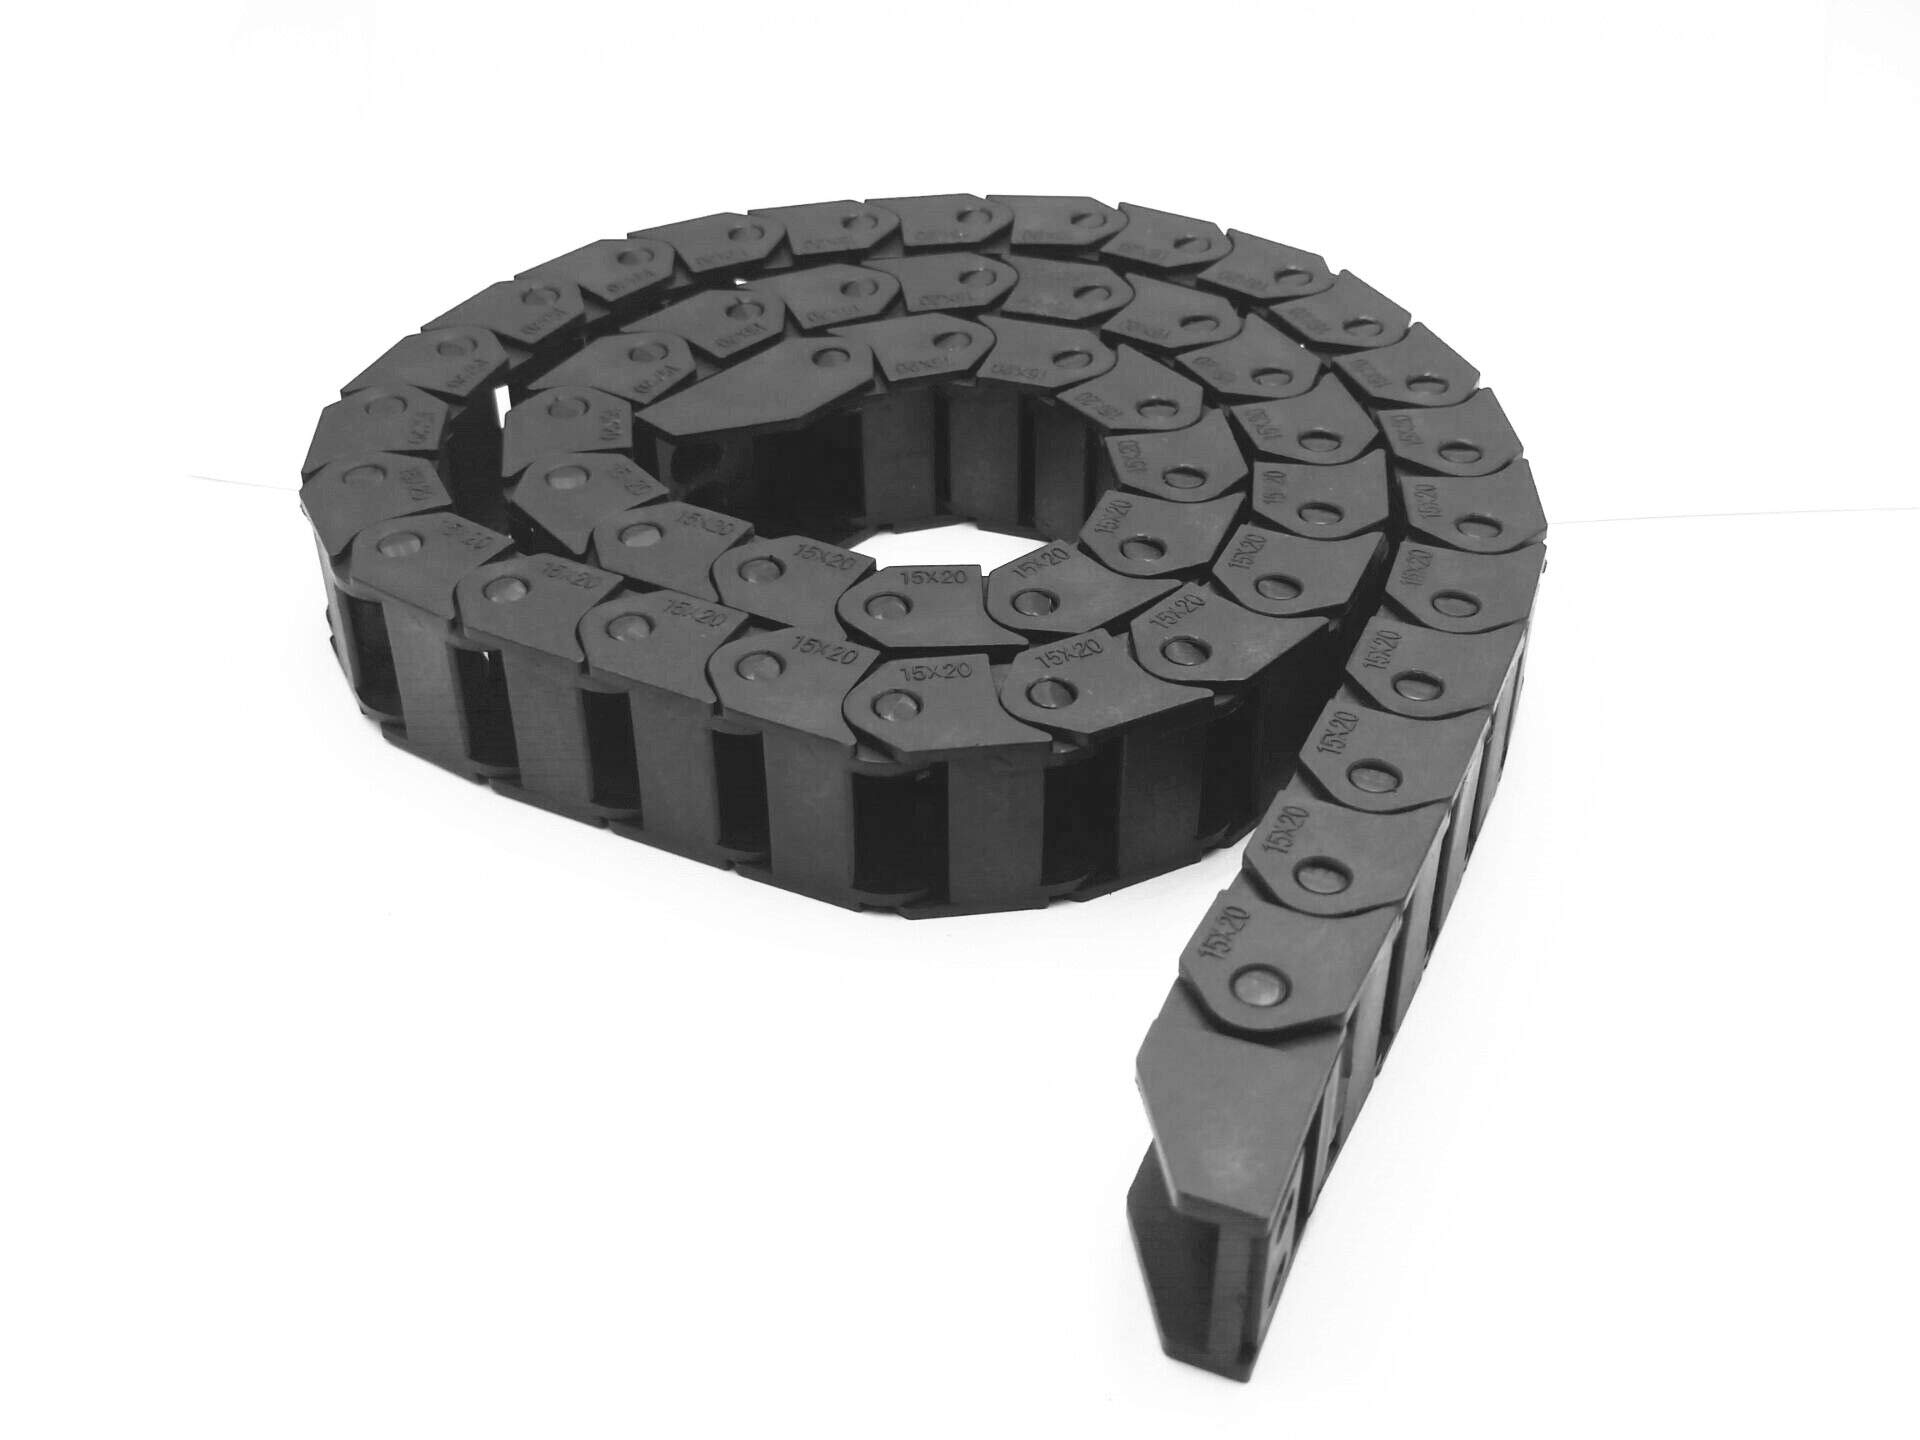 XYY 1m 10pcs Black Plastic Drag Chain Cable Carrier for CNC Router Mill 15mm x 20mm by XINYIYUAN